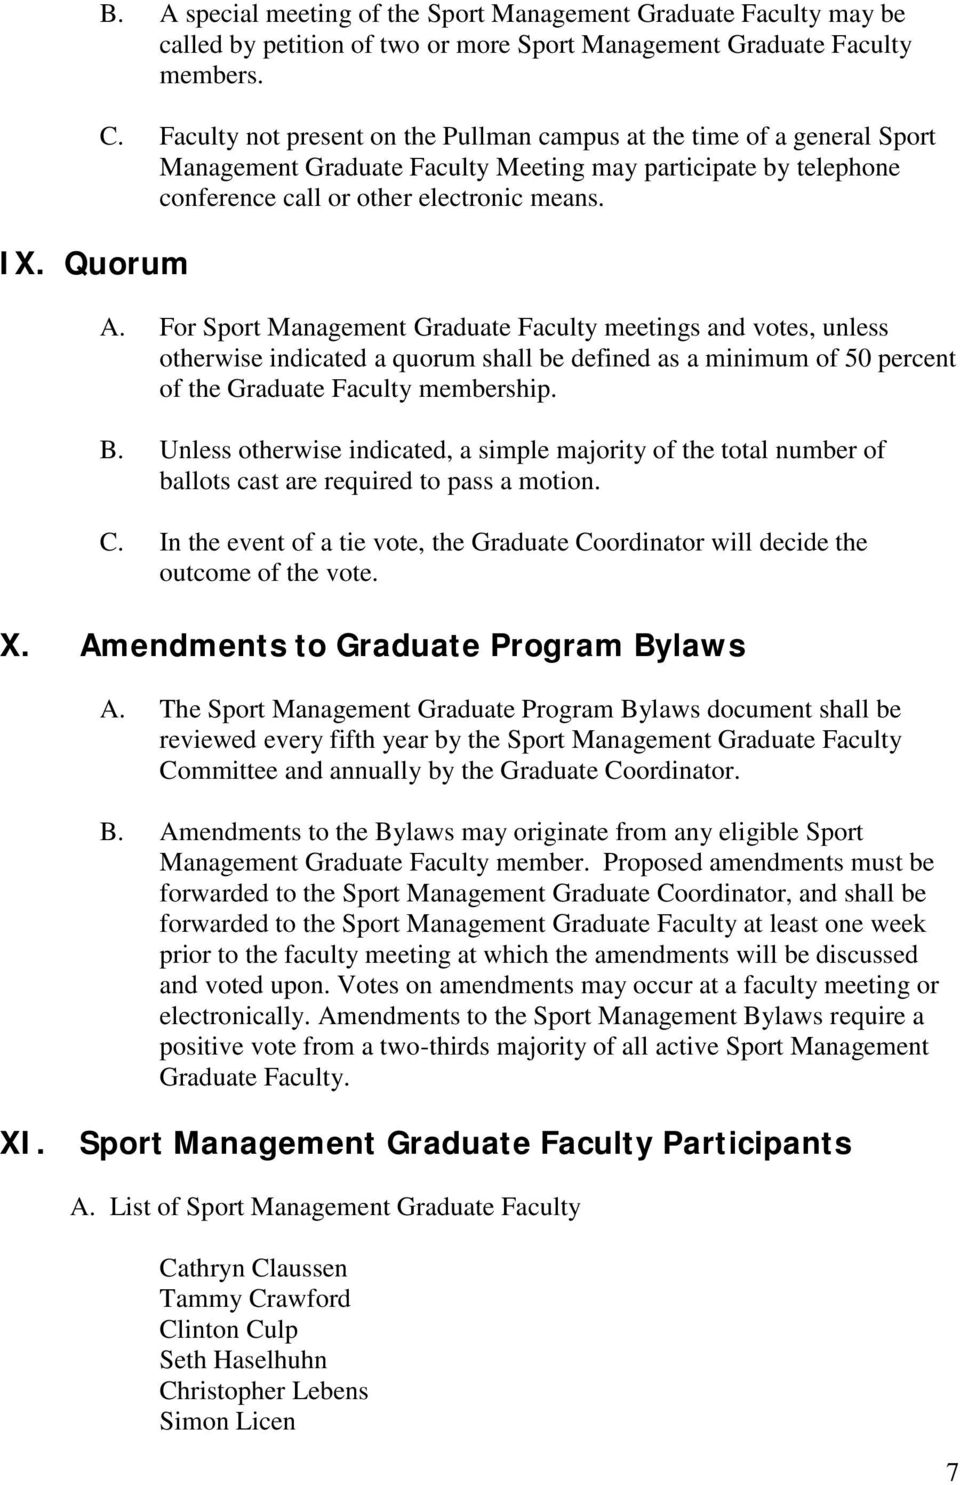 For Sport Management Graduate Faculty meetings and votes, unless otherwise indicated a quorum shall be defined as a minimum of 50 percent of the Graduate Faculty membership. B.